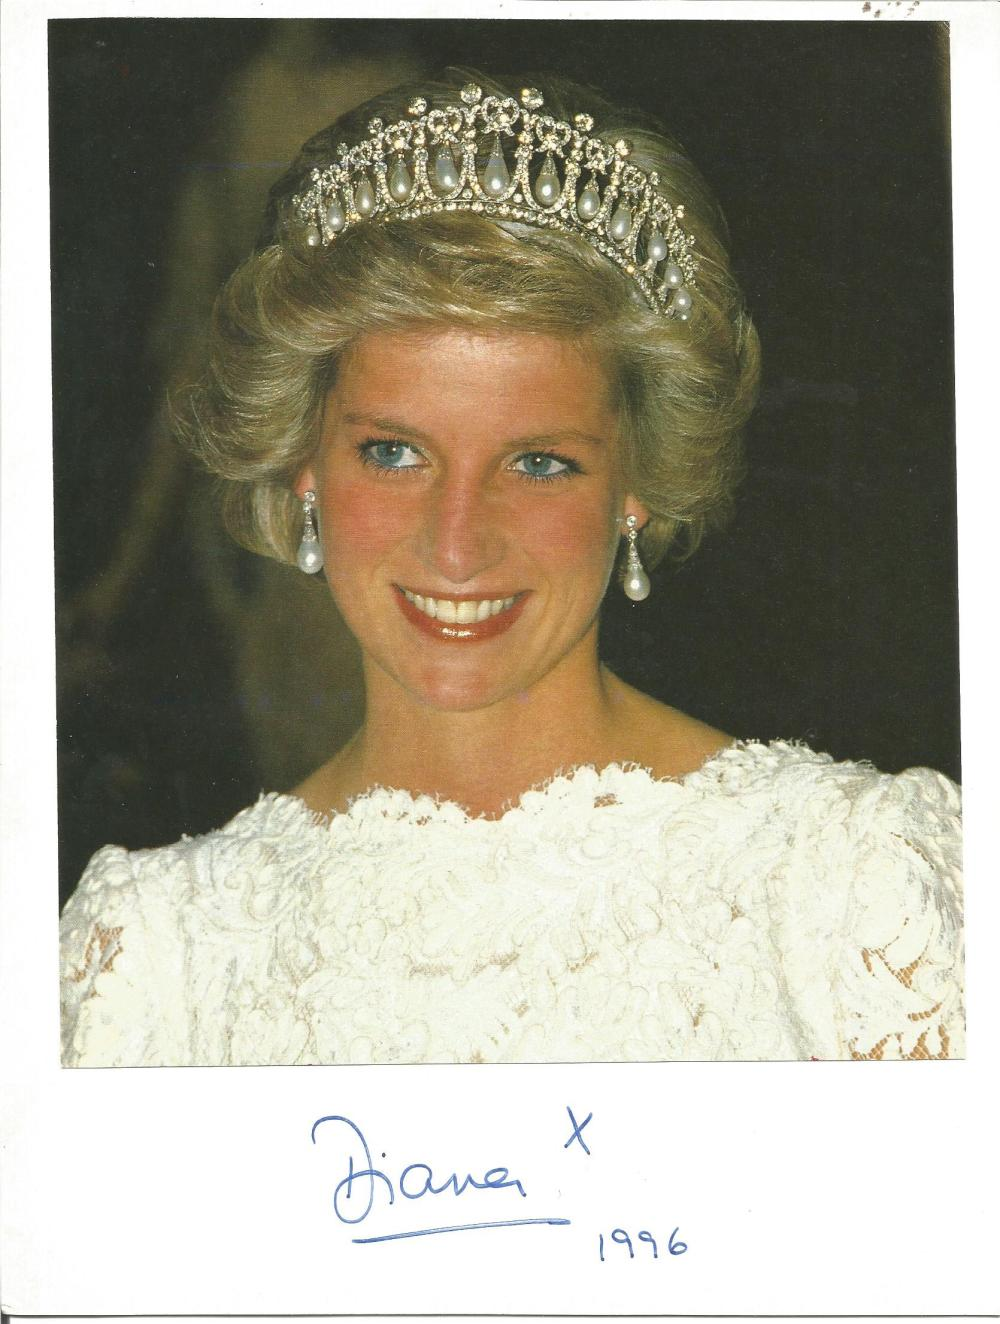 Lady Diana Princess of Wales signed 10 x 8 stunning colour photo dated 1996, with copy of the